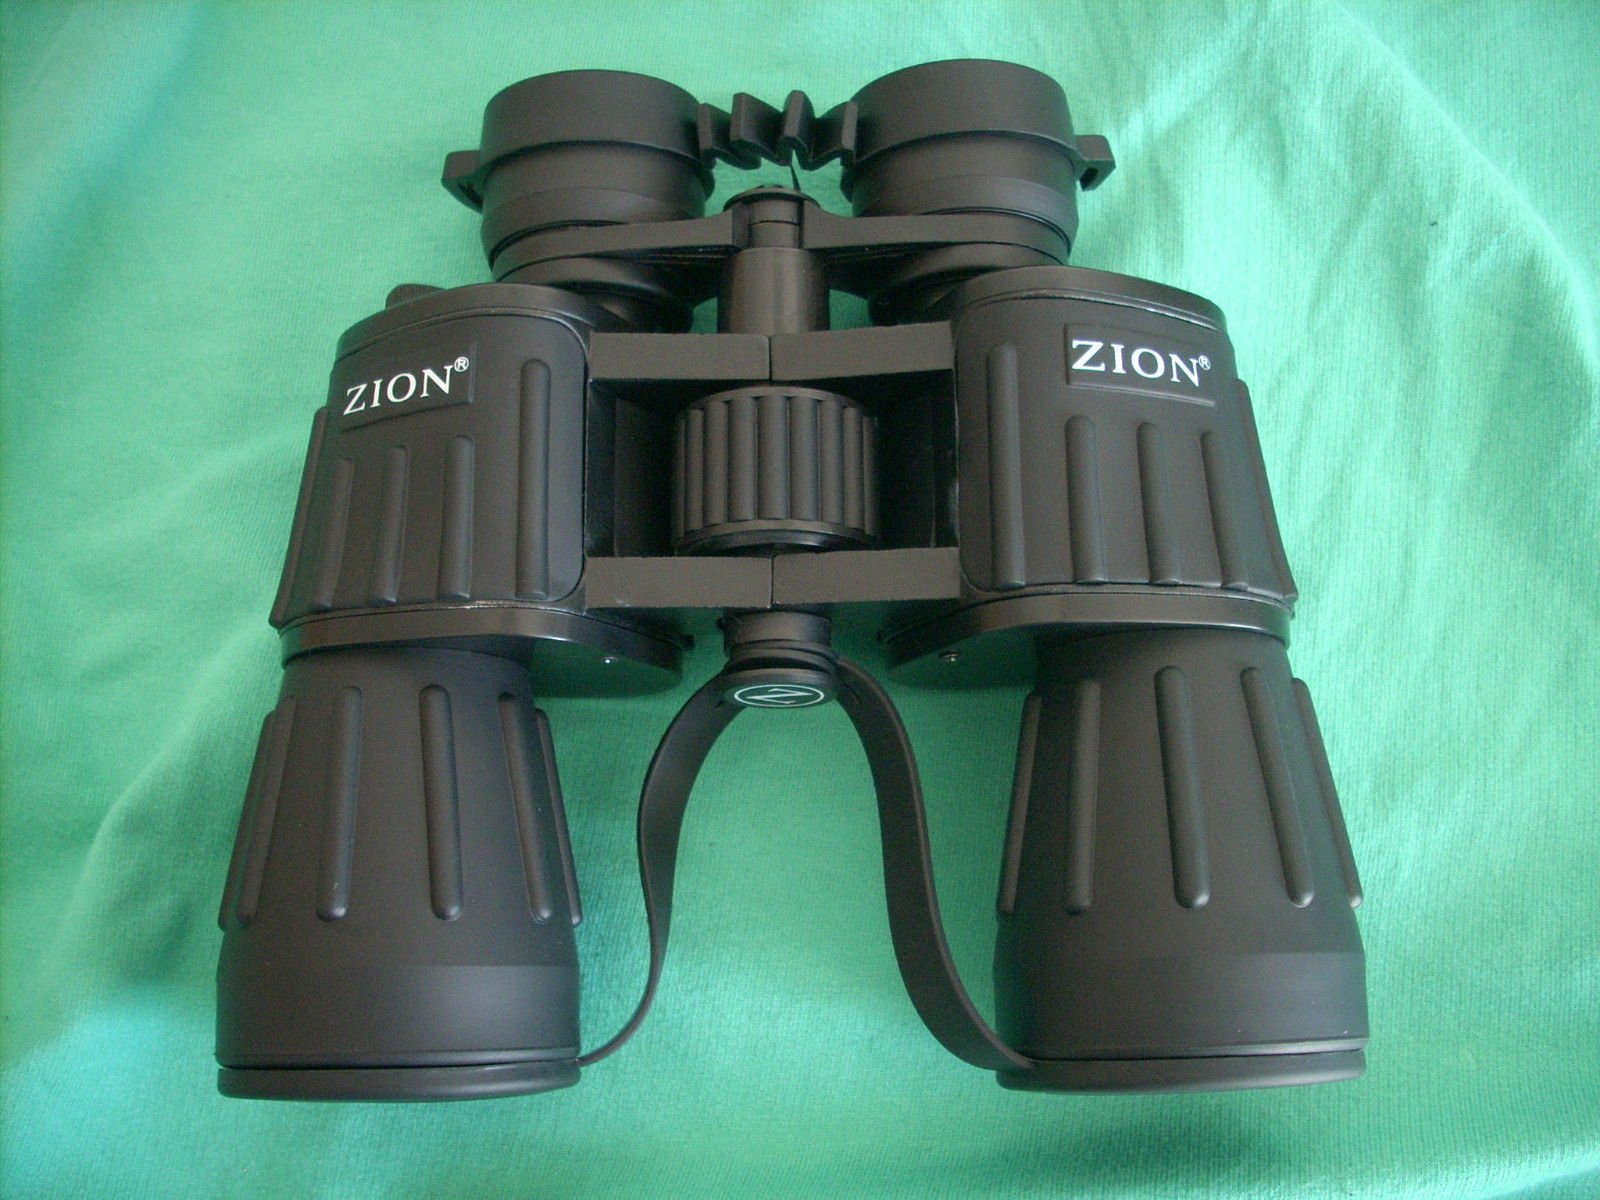 Zion Big Eye Lens 20X-120X 50mm Fully-Coated Optic-Lens Military Zoom Binoculars by BINOCULARS